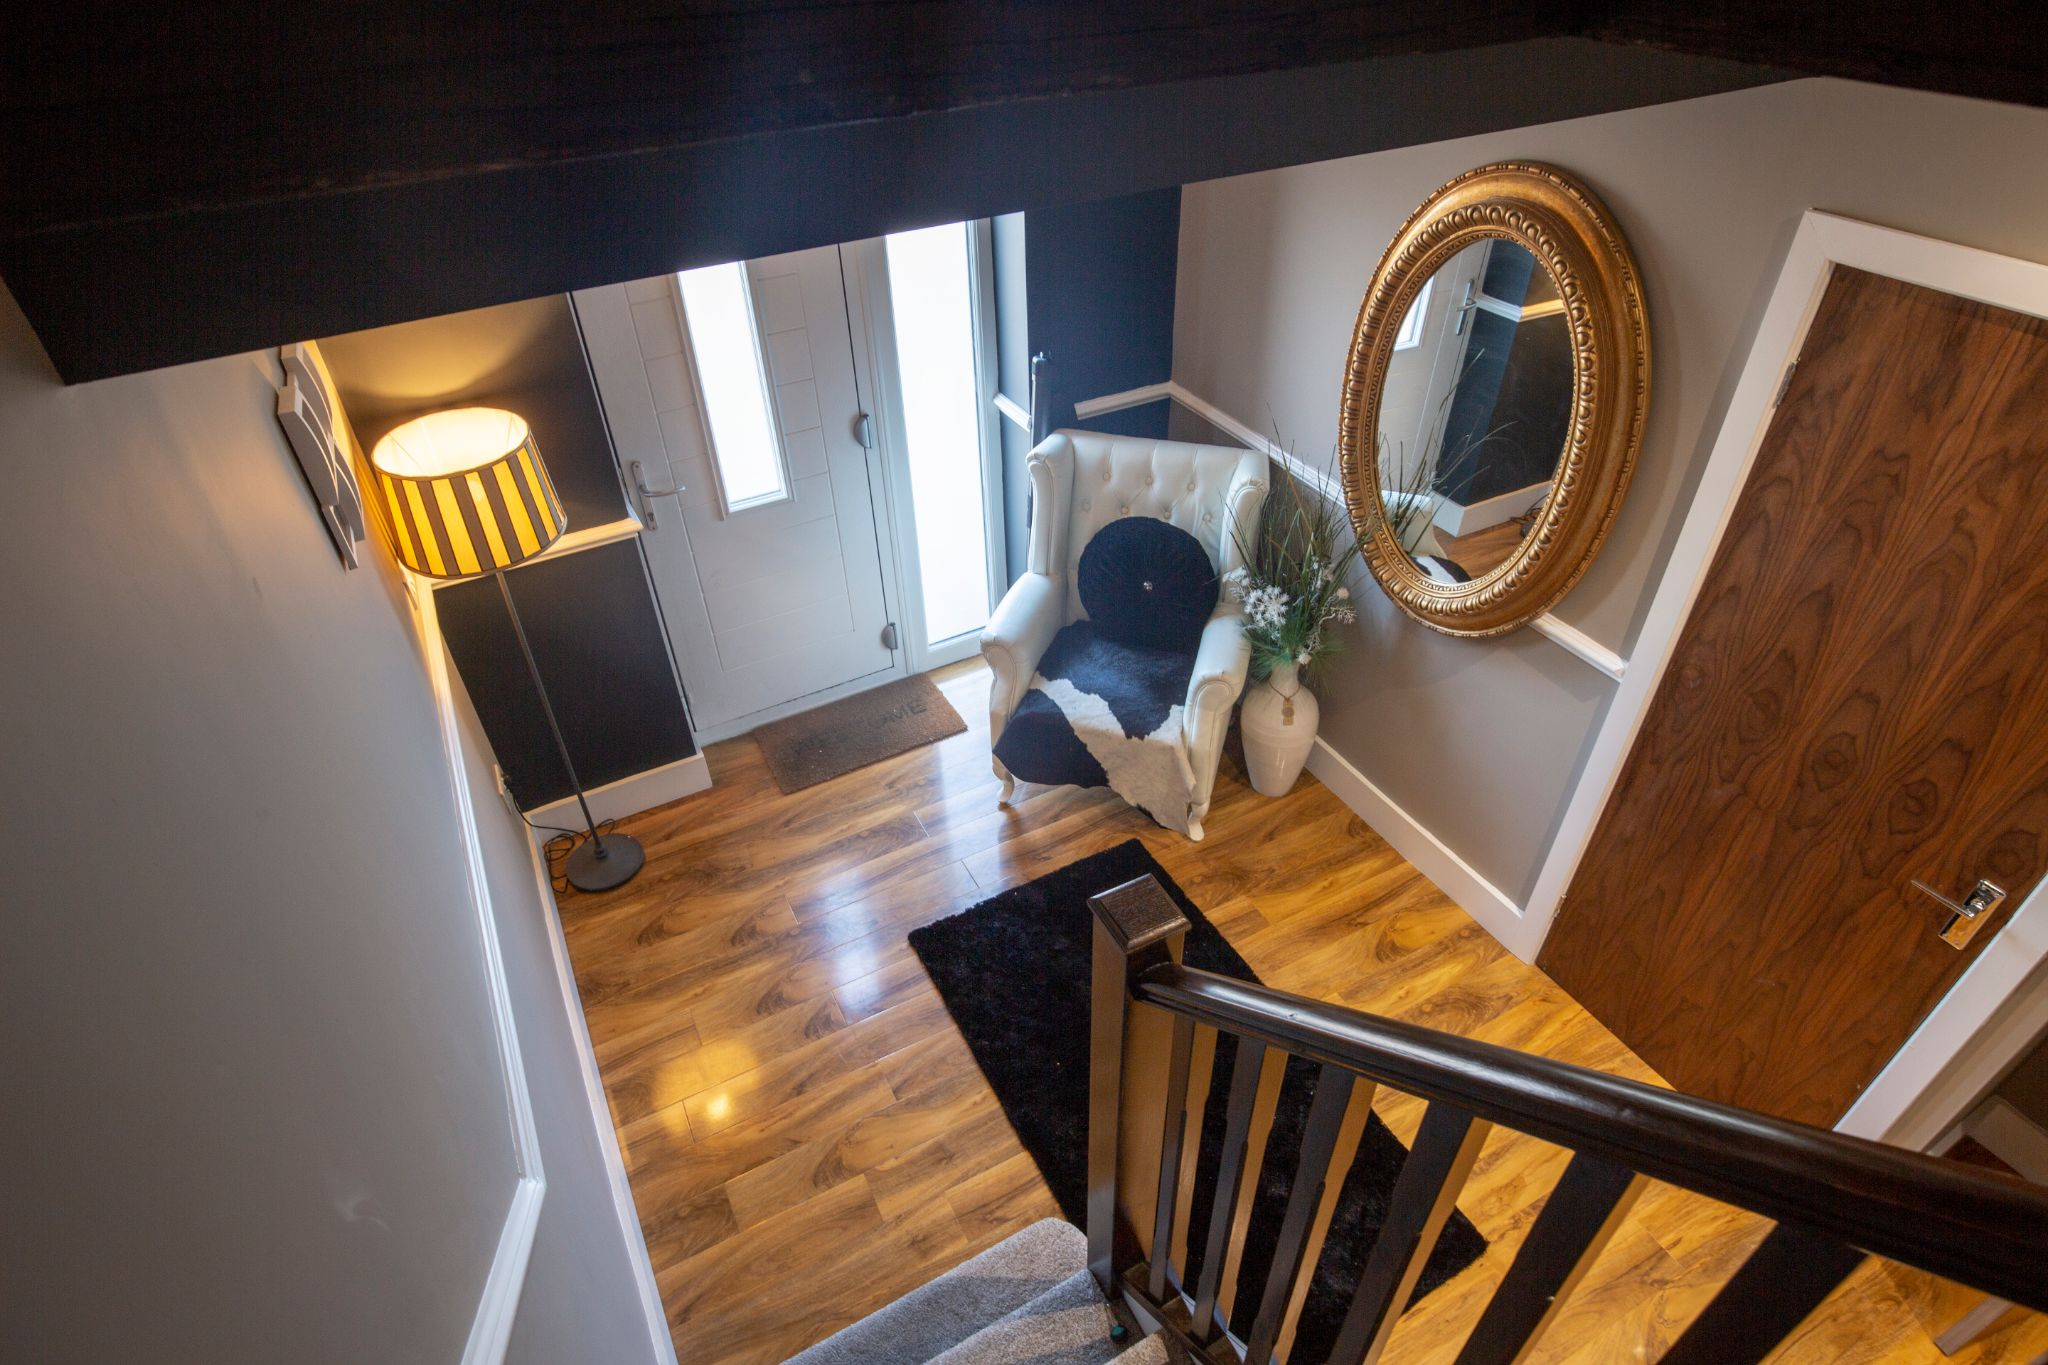 4 bedroom detached house For Sale in Brighouse - Staircase